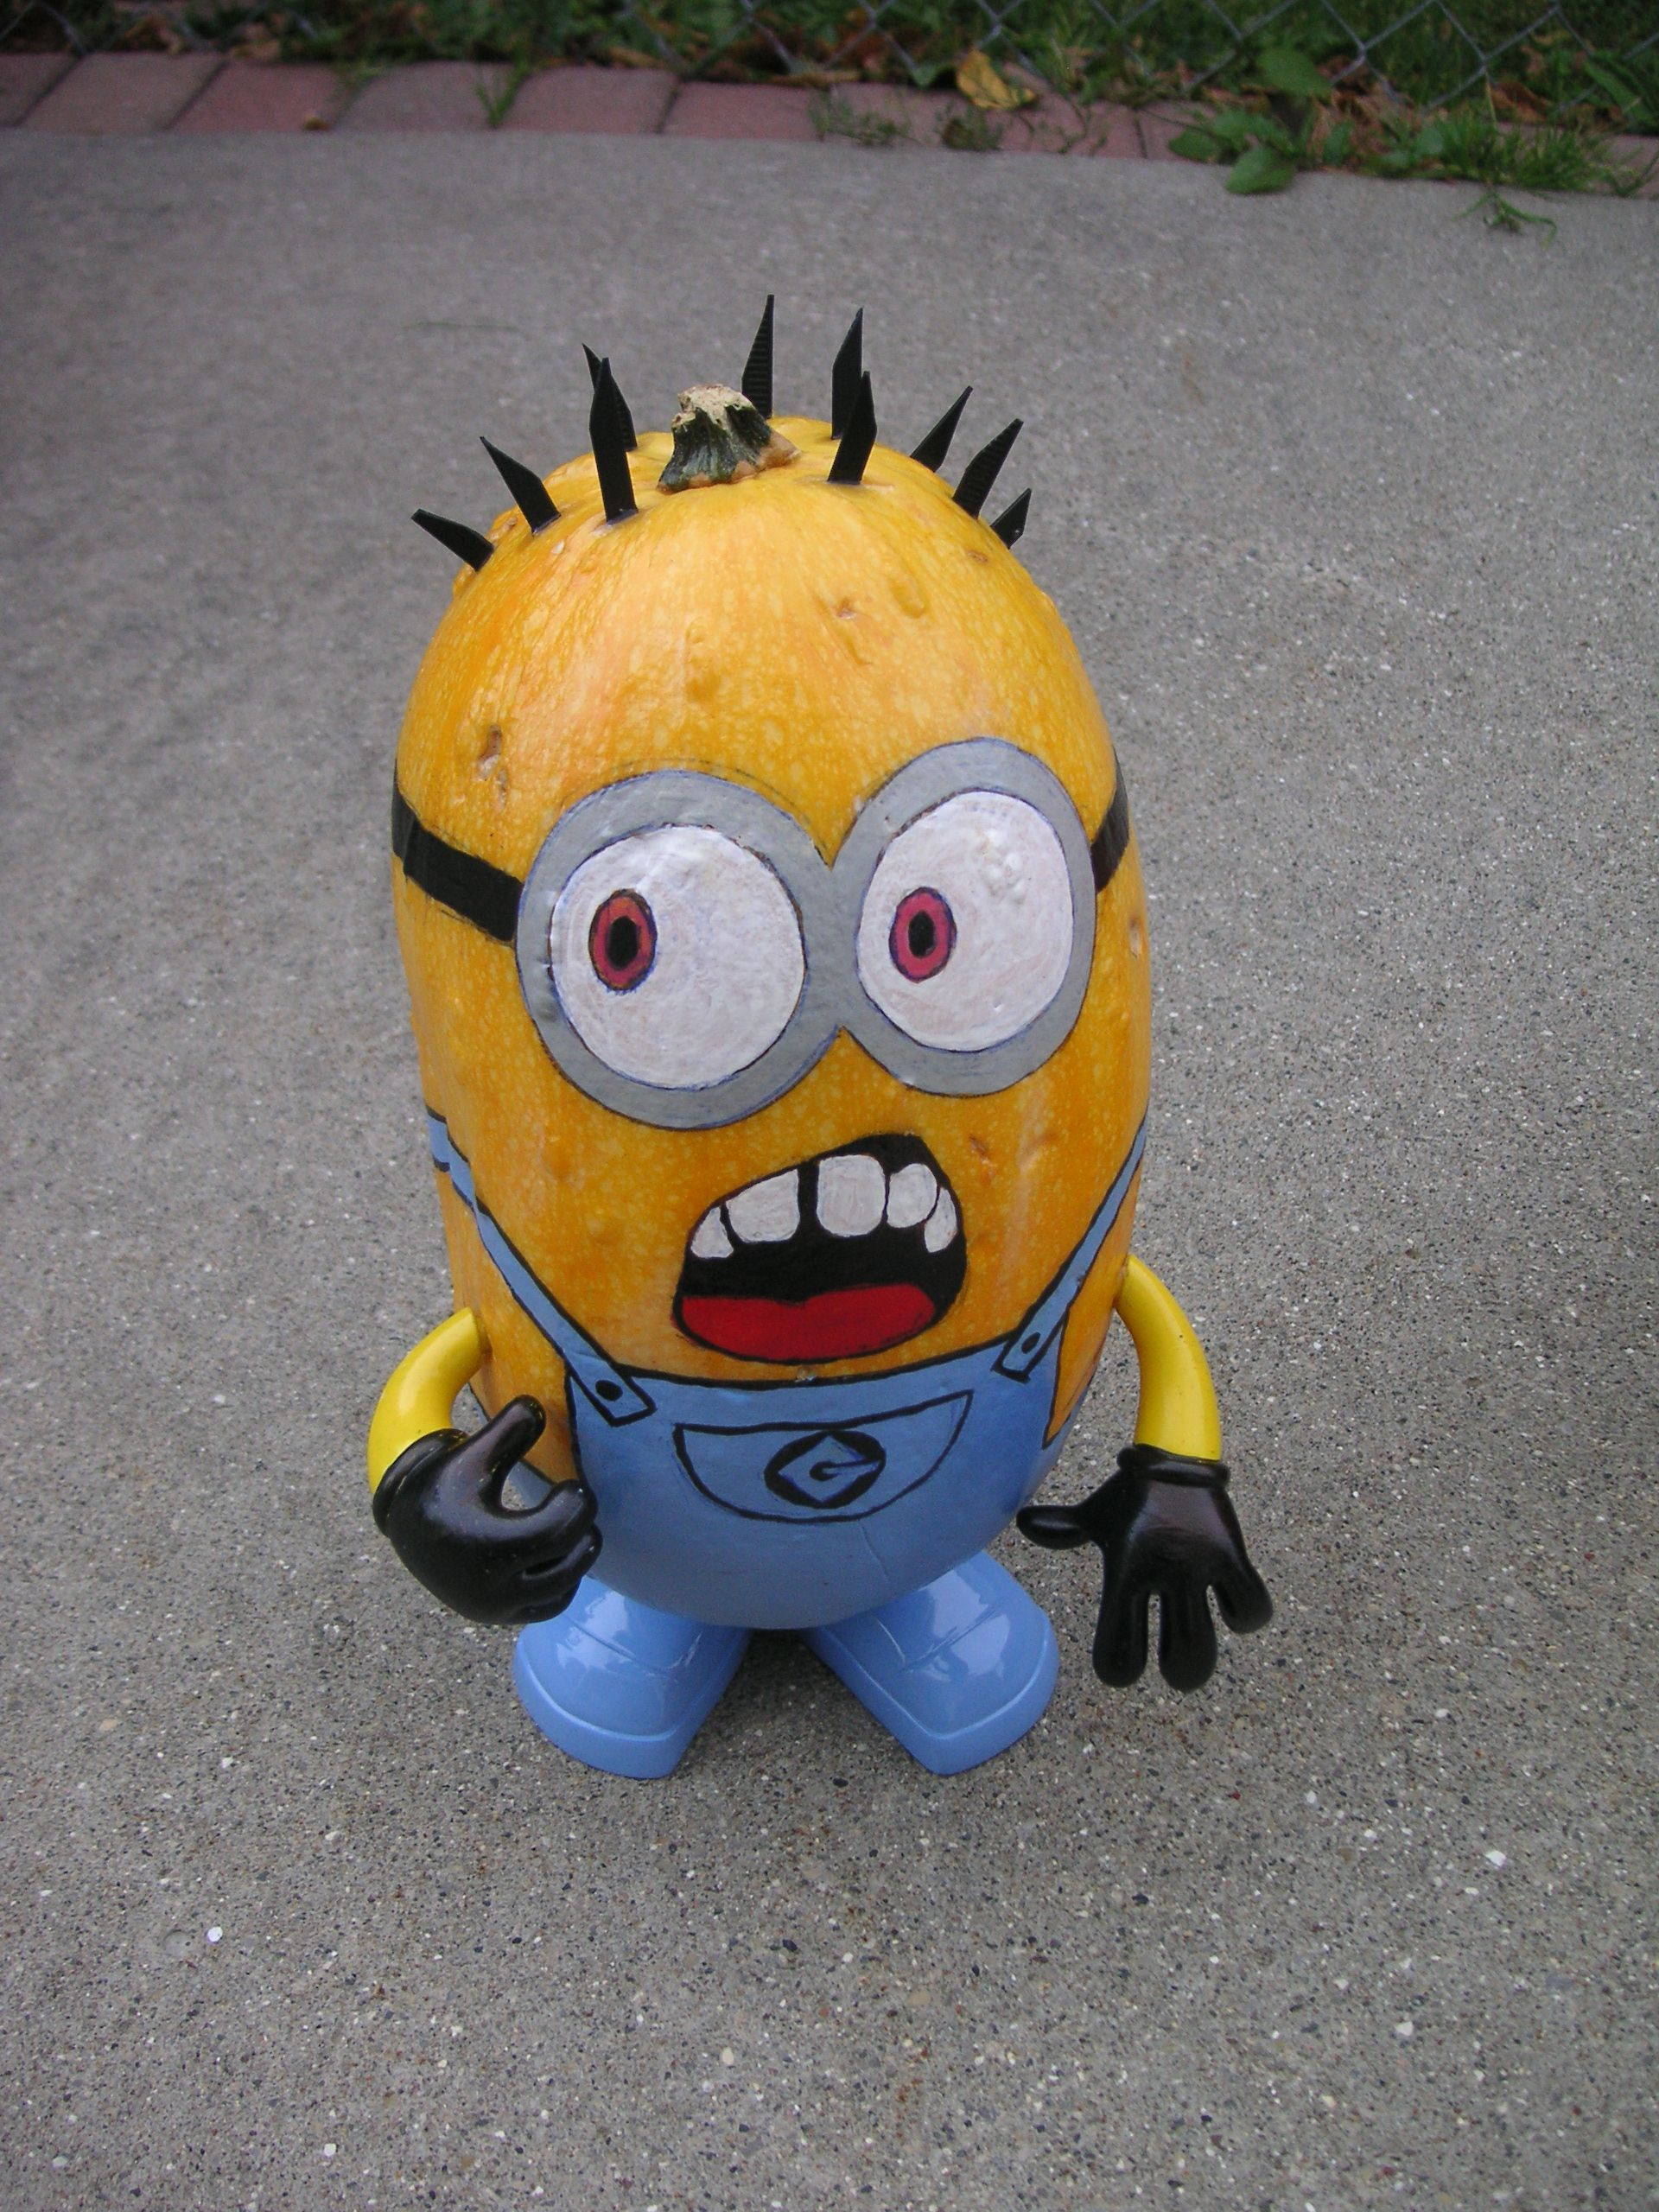 whaaaat this little minion was made using a squash and the arms rh pinterest com